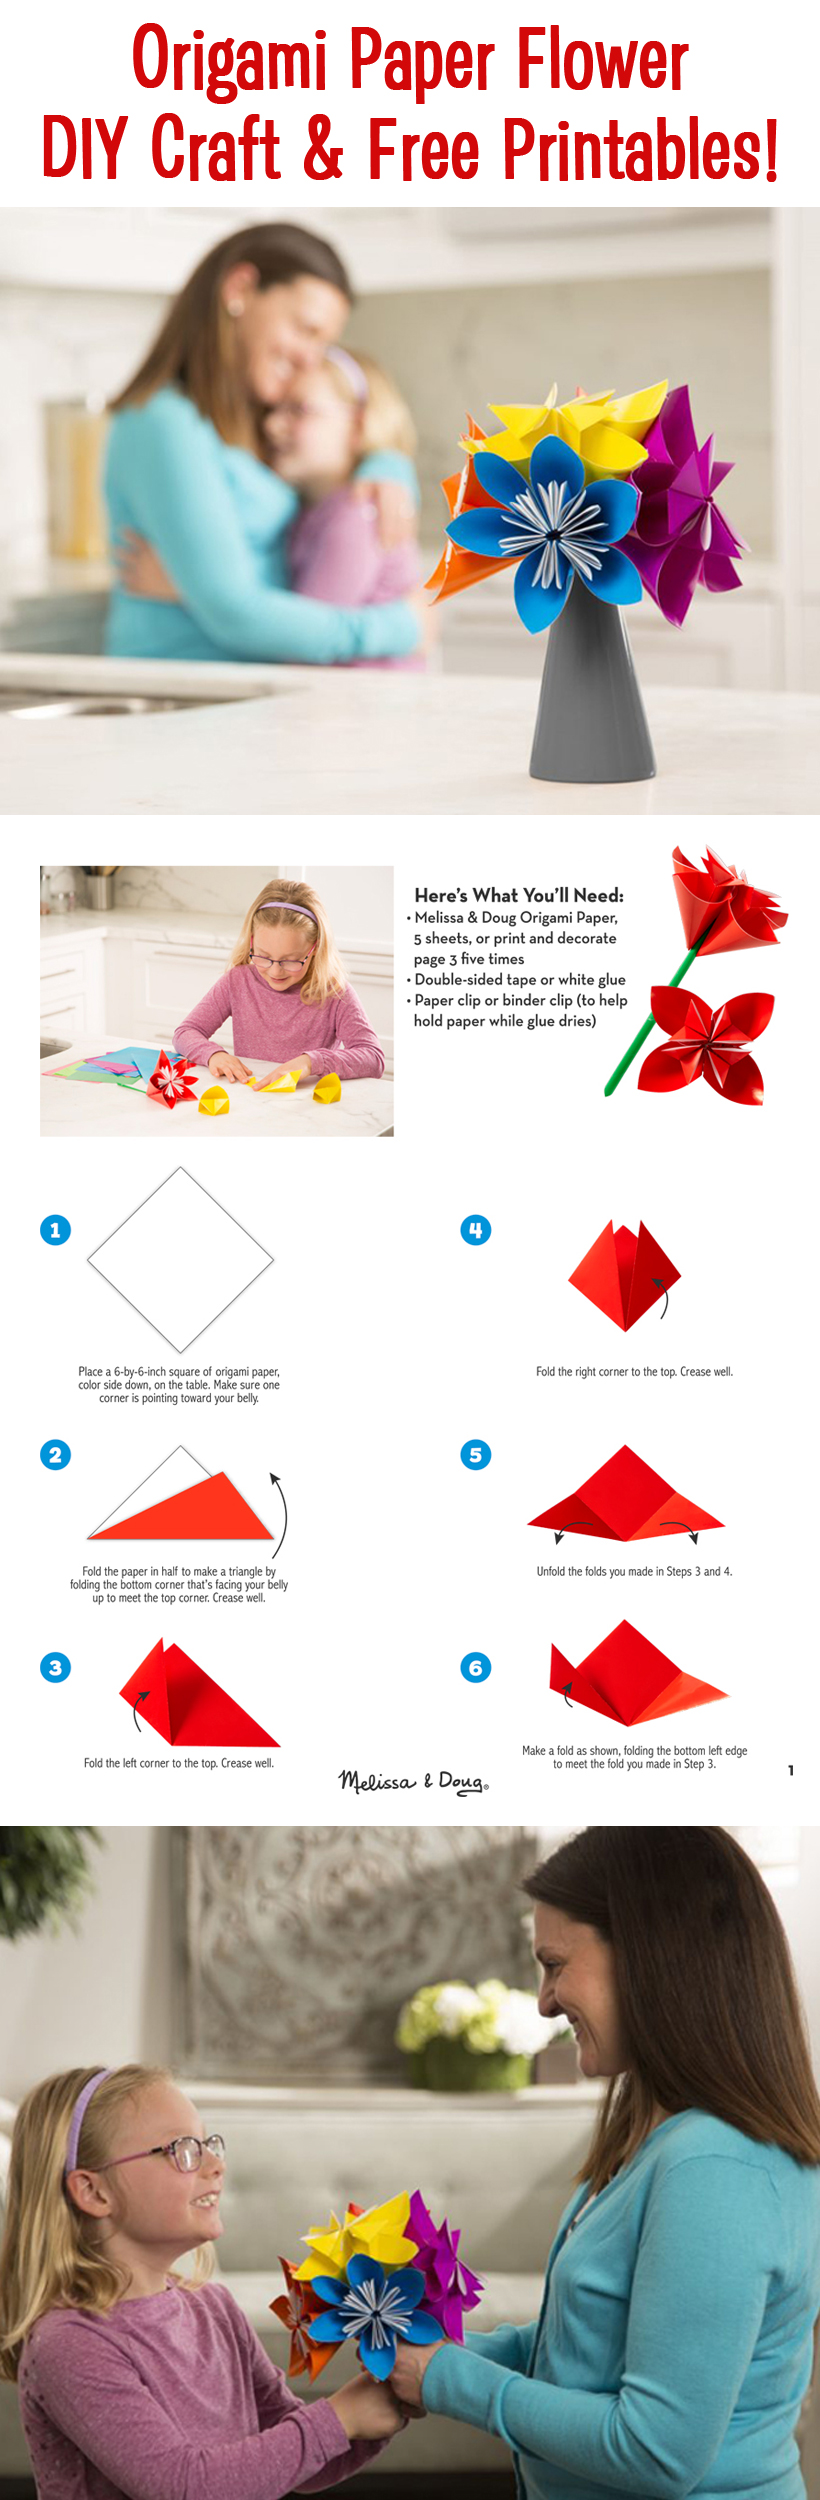 DIY Craft Origami Paper Flower for Mother's Day